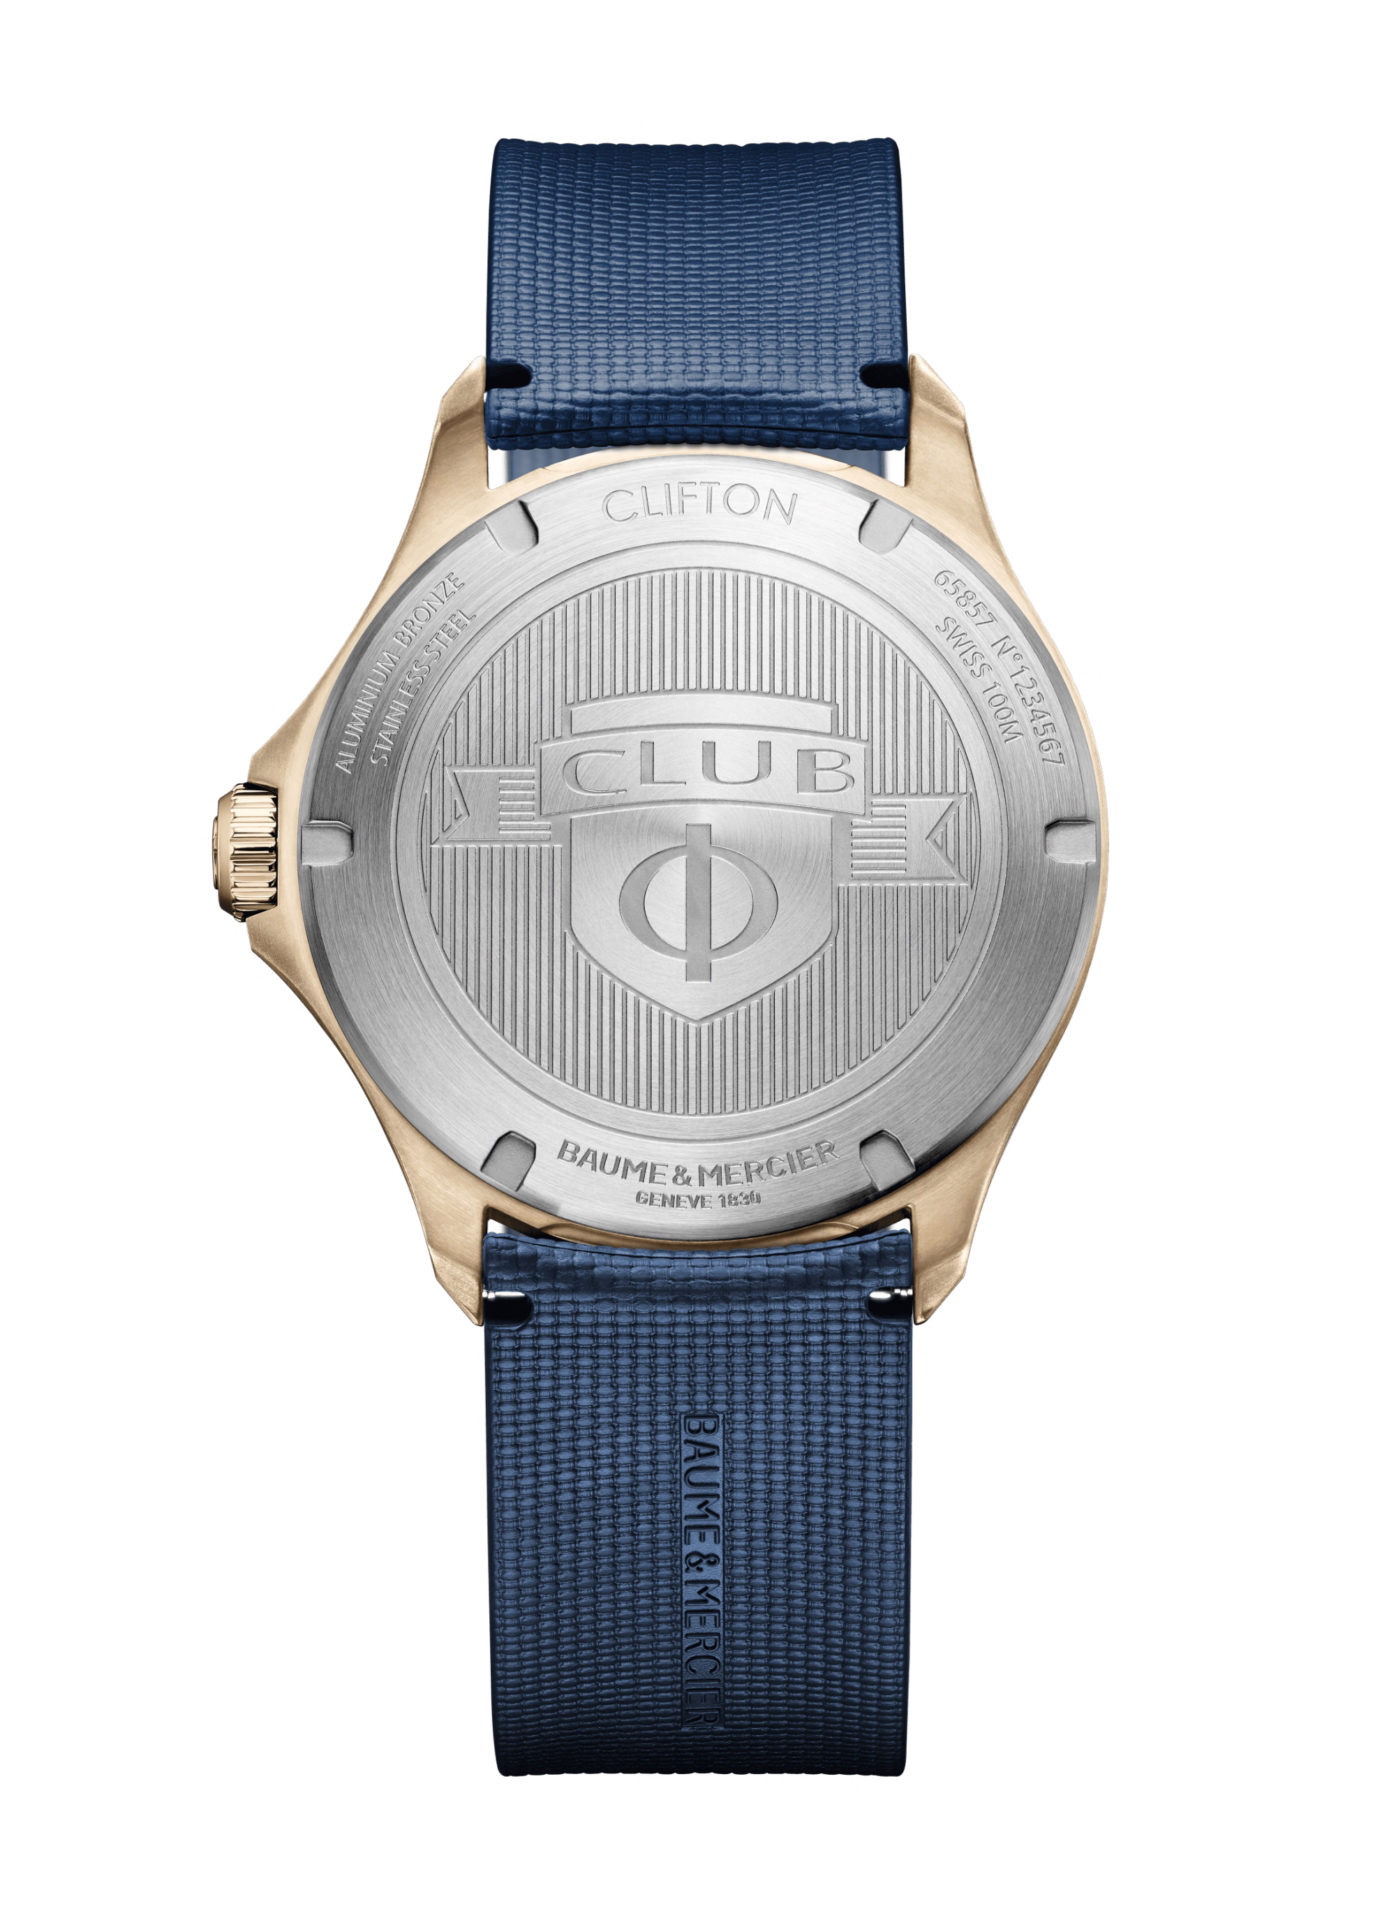 Baume-&-Mercier-Clifton-Club-10502*-Hall-of-Time